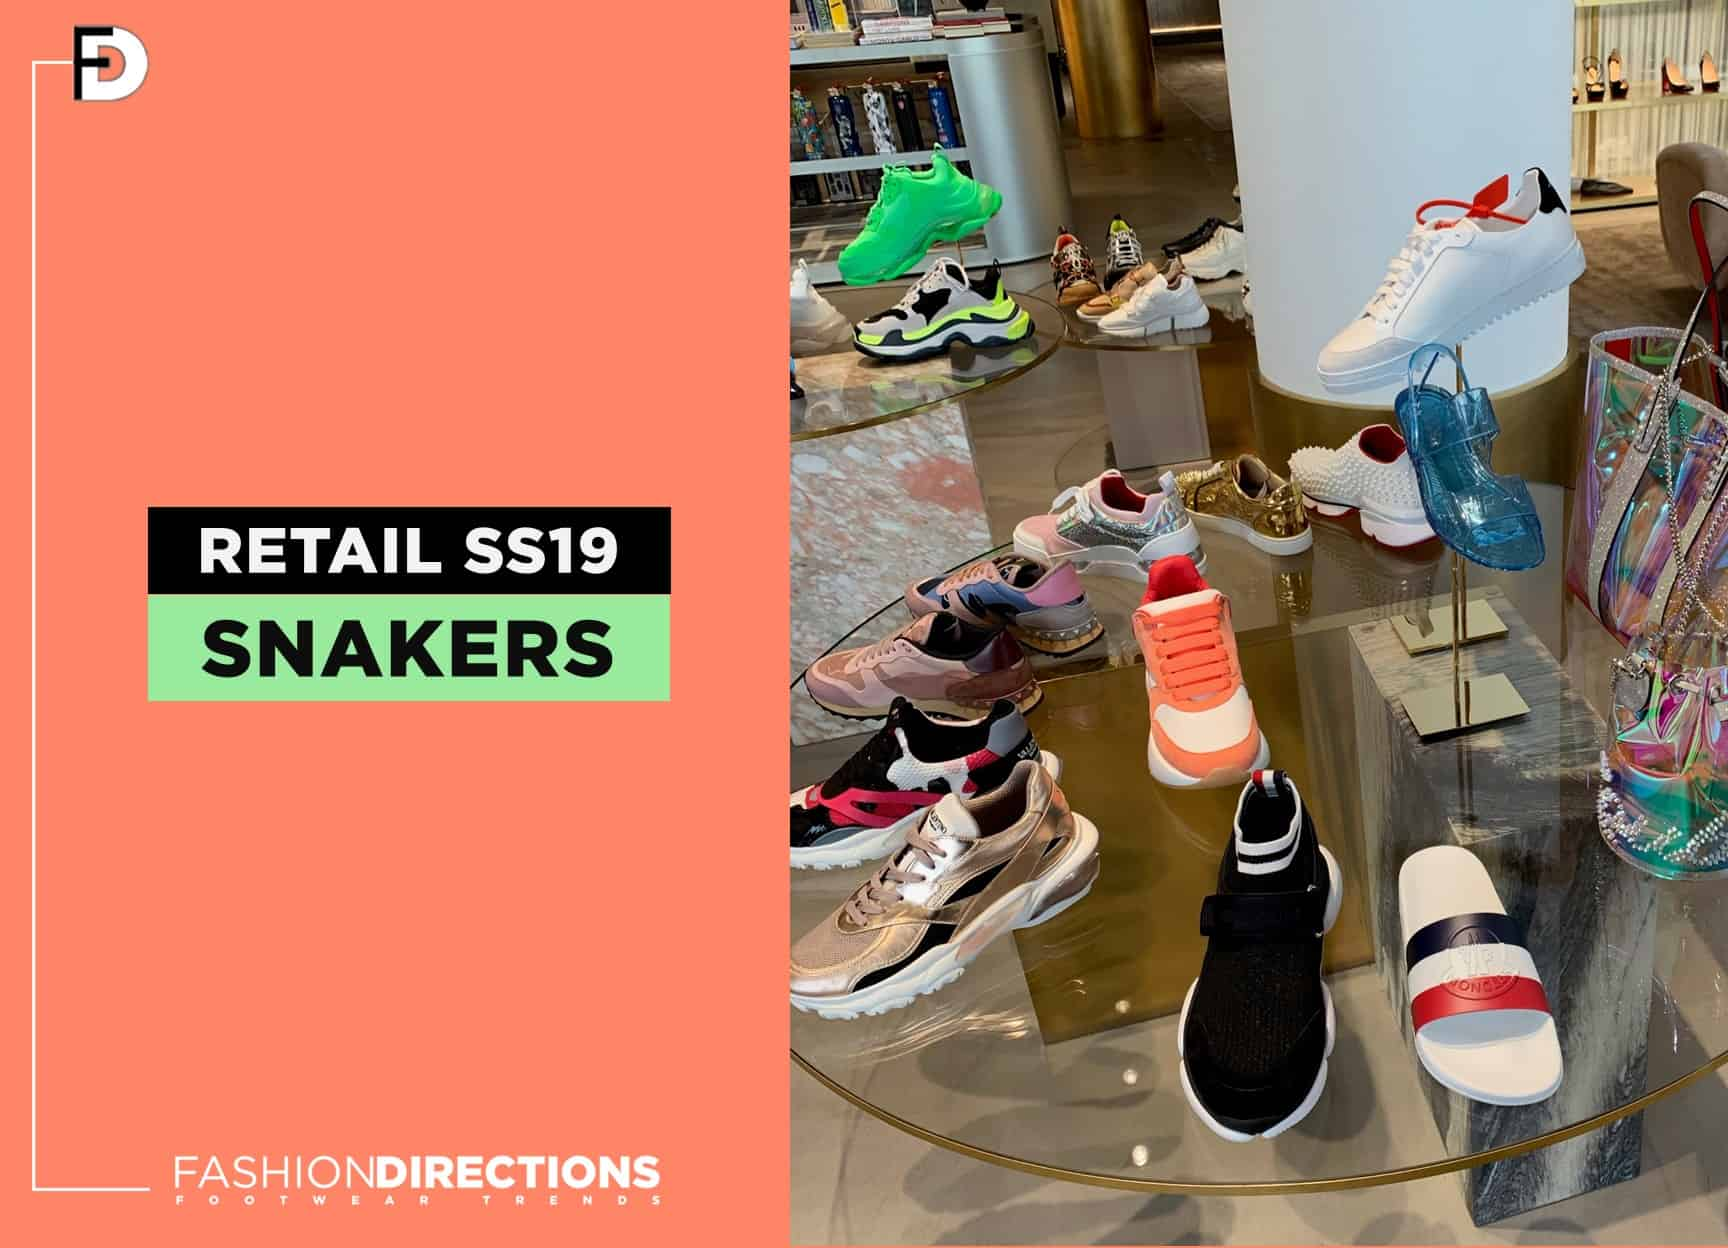 Luxury Shoes 2019 Retail Stores Windows 115 Sneakers